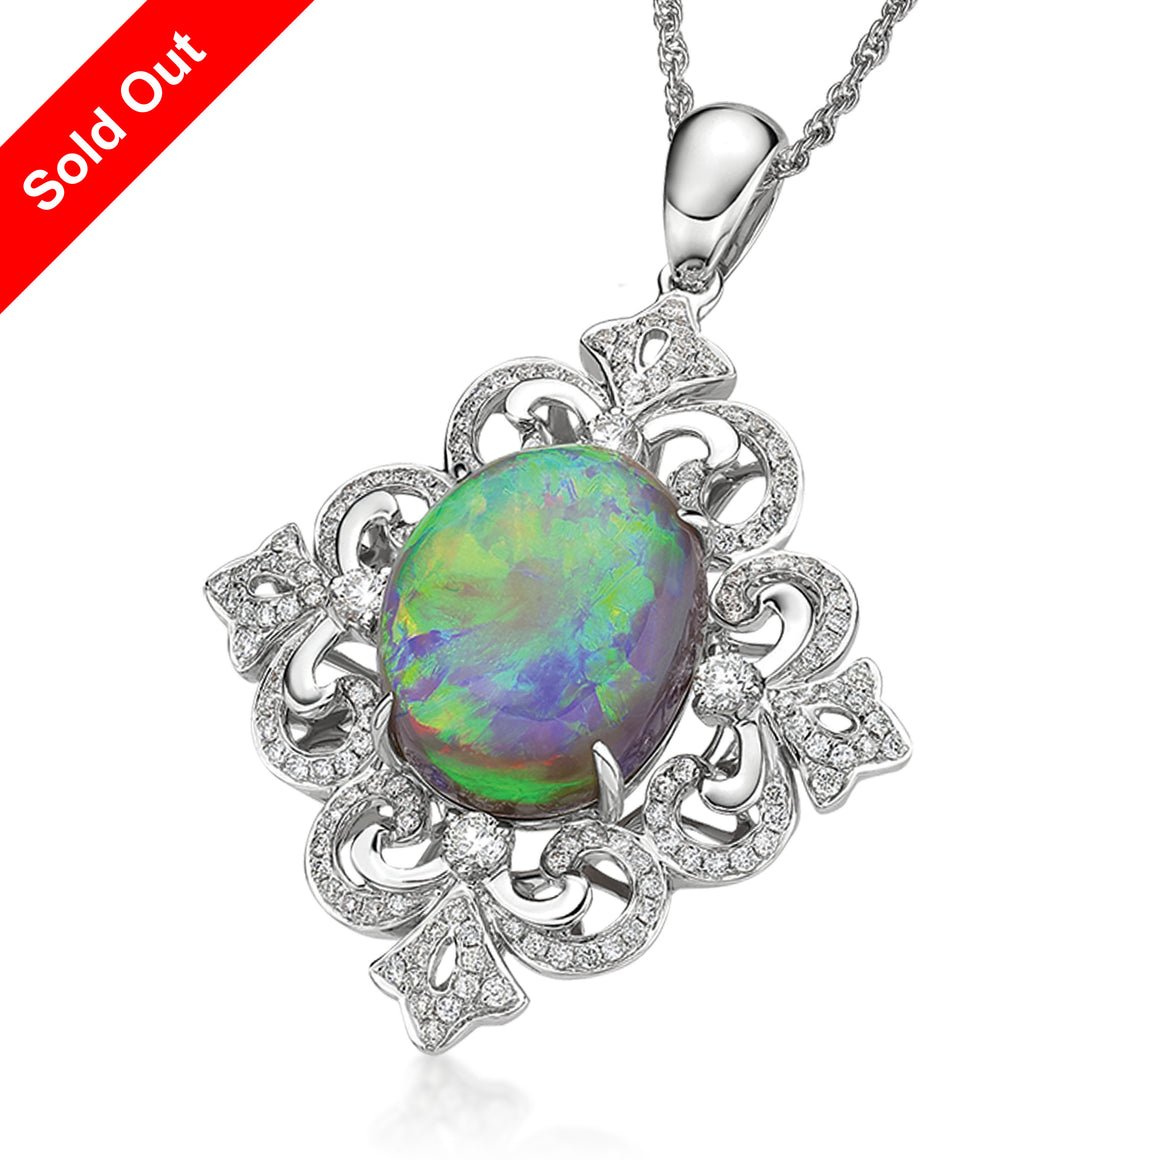 18K White Gold & Diamond Australian Black Opal Pendant